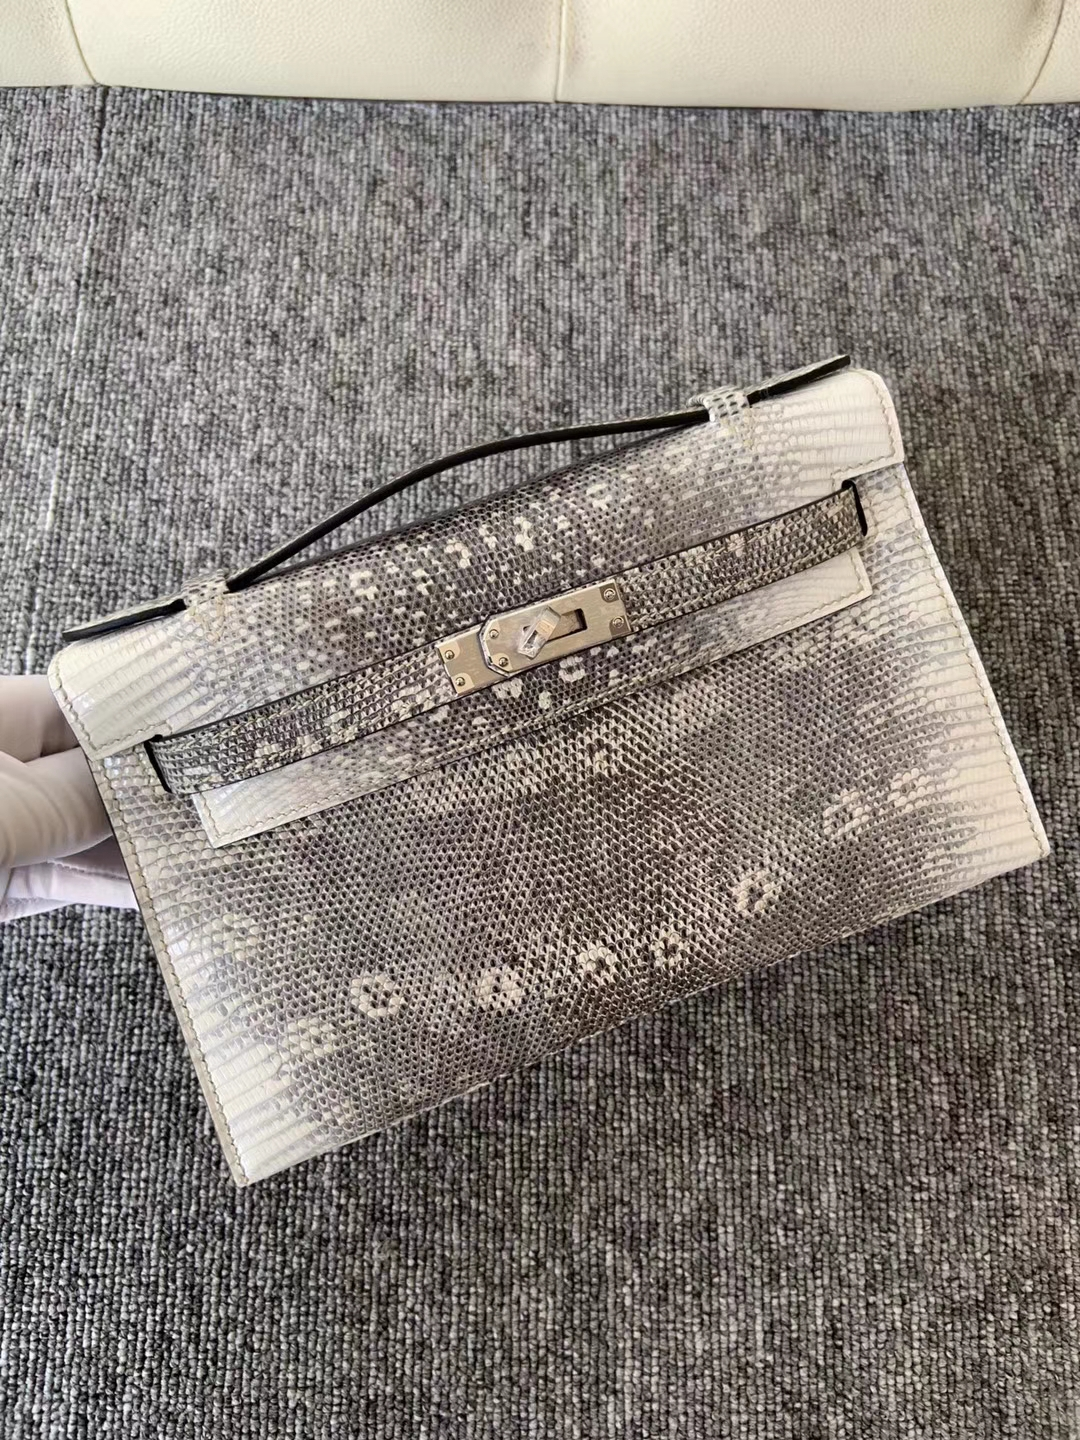 Customize Hermes Himalaya Lizard Leather Minikelly Clutch Bag22CM Silver Hardware